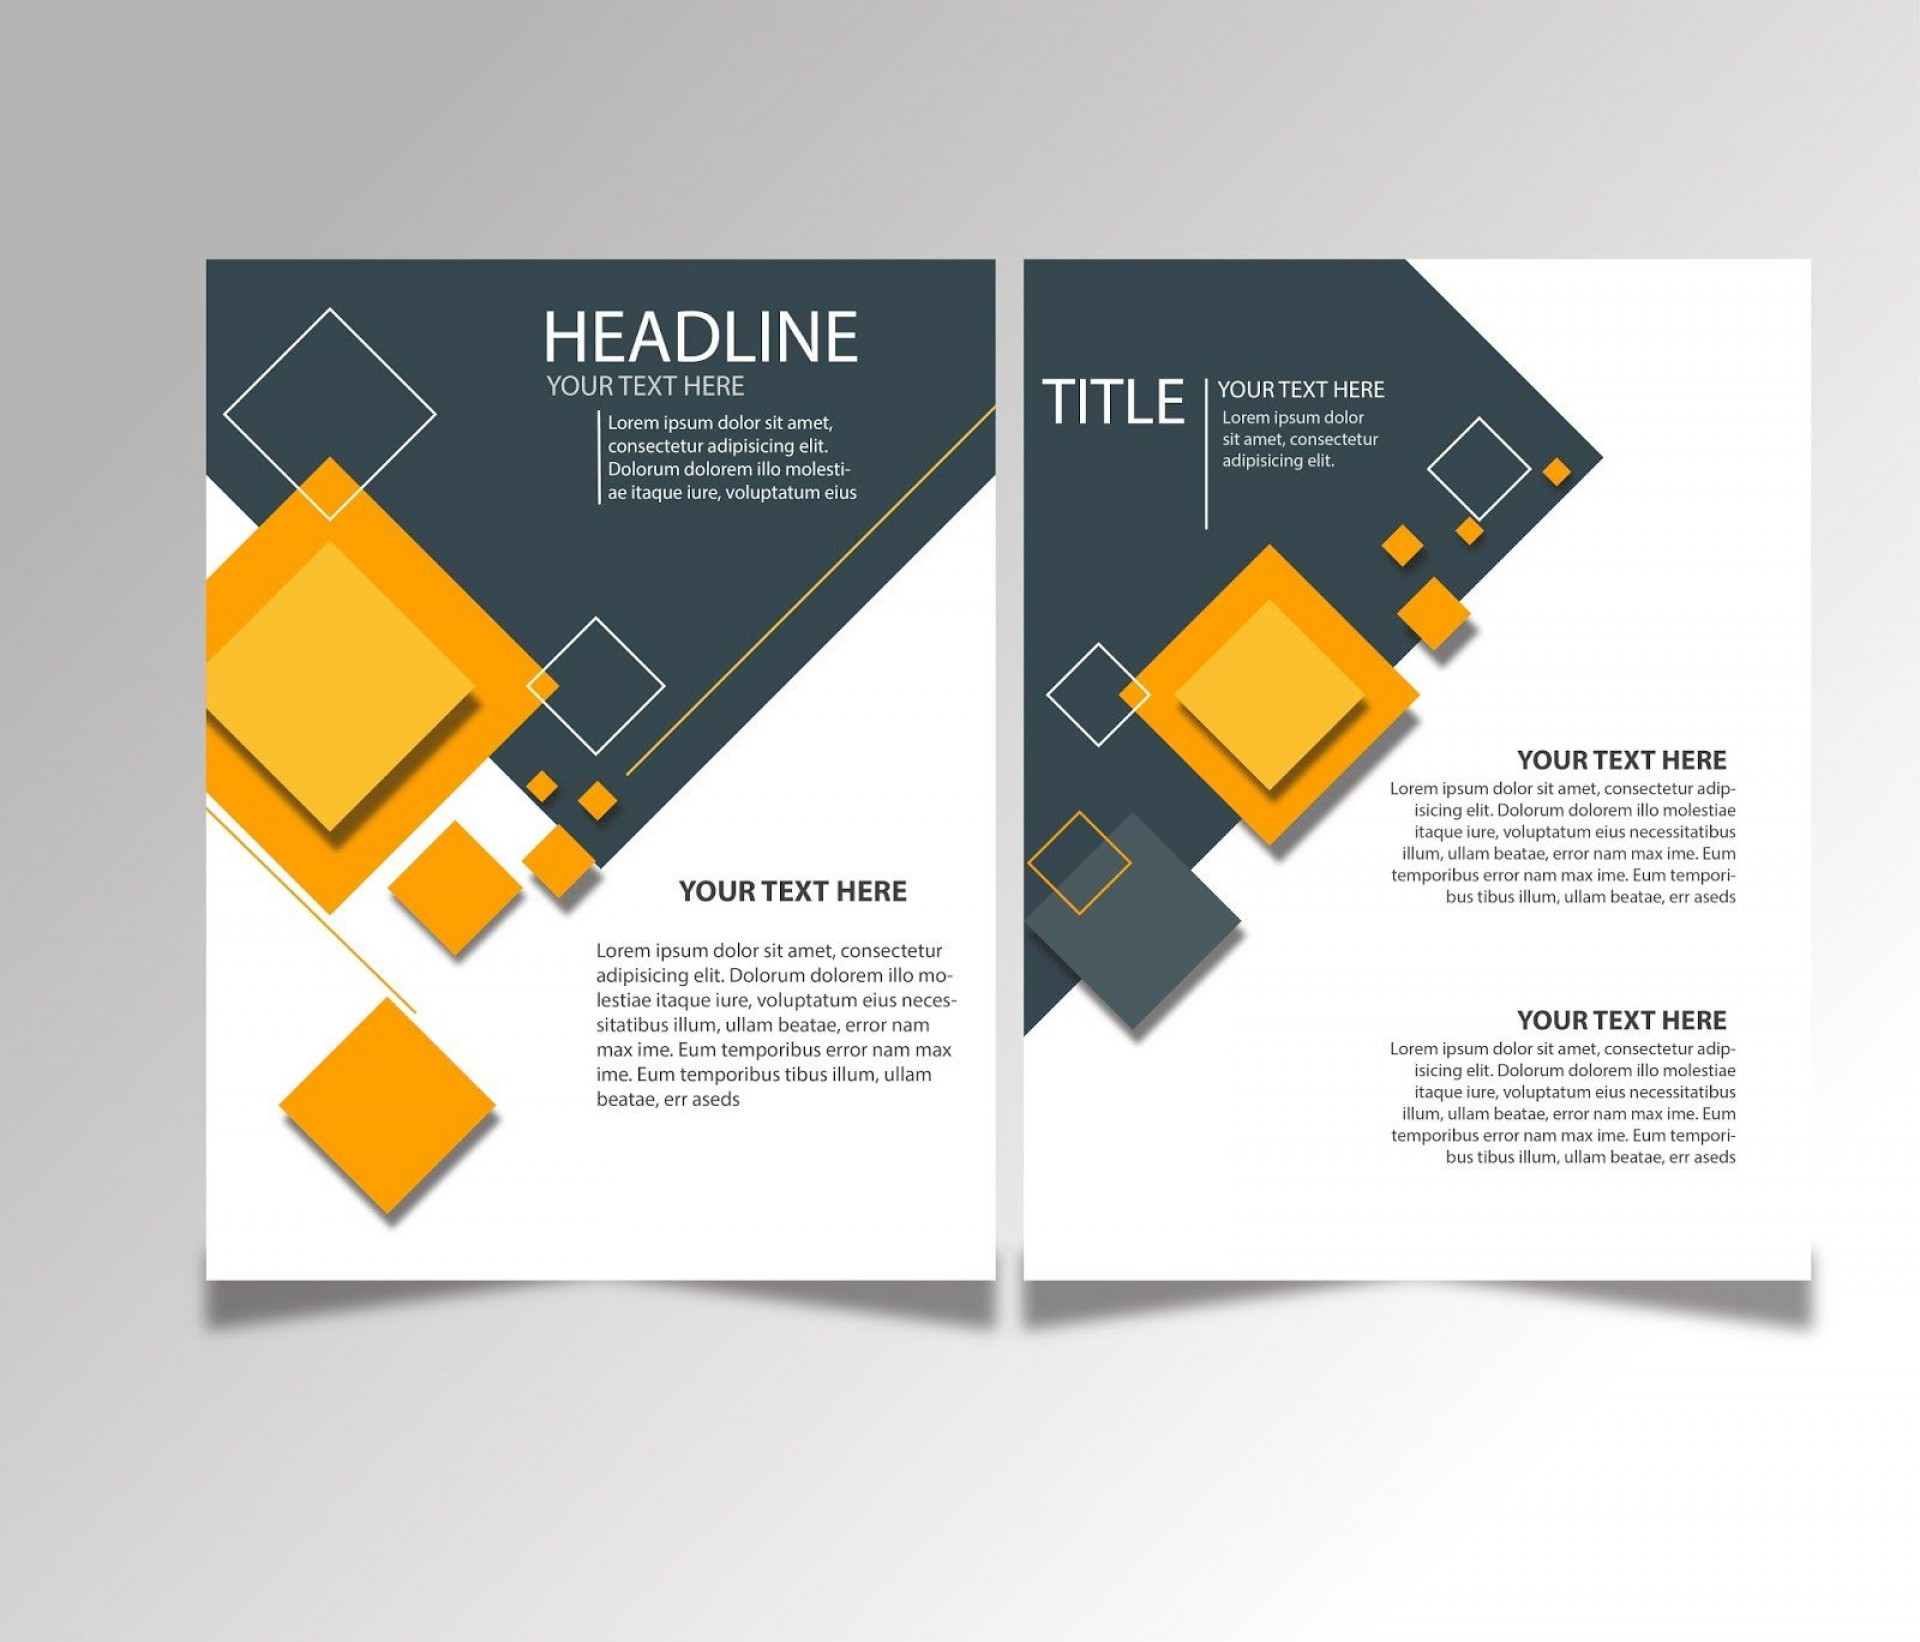 009 Magnificent Photoshop Brochure Design Template Free Download Highest Clarity 1920